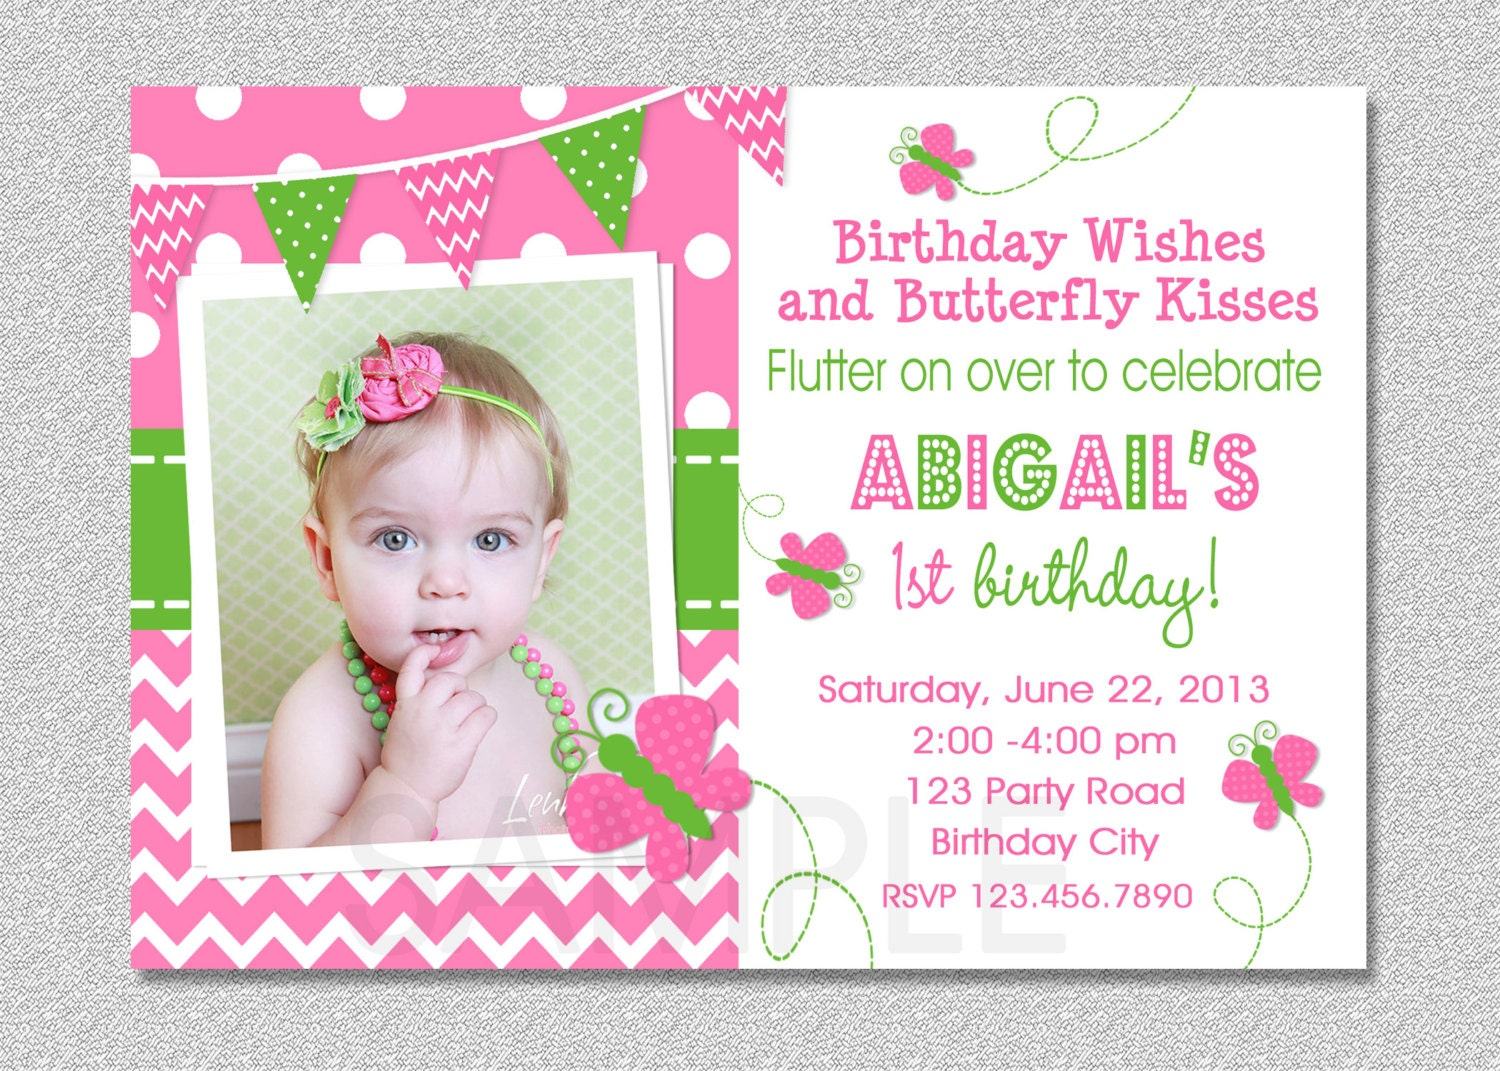 Butterfly Birthday Invitation Butterfly Invitation Girl - Butterfly birthday invitation images